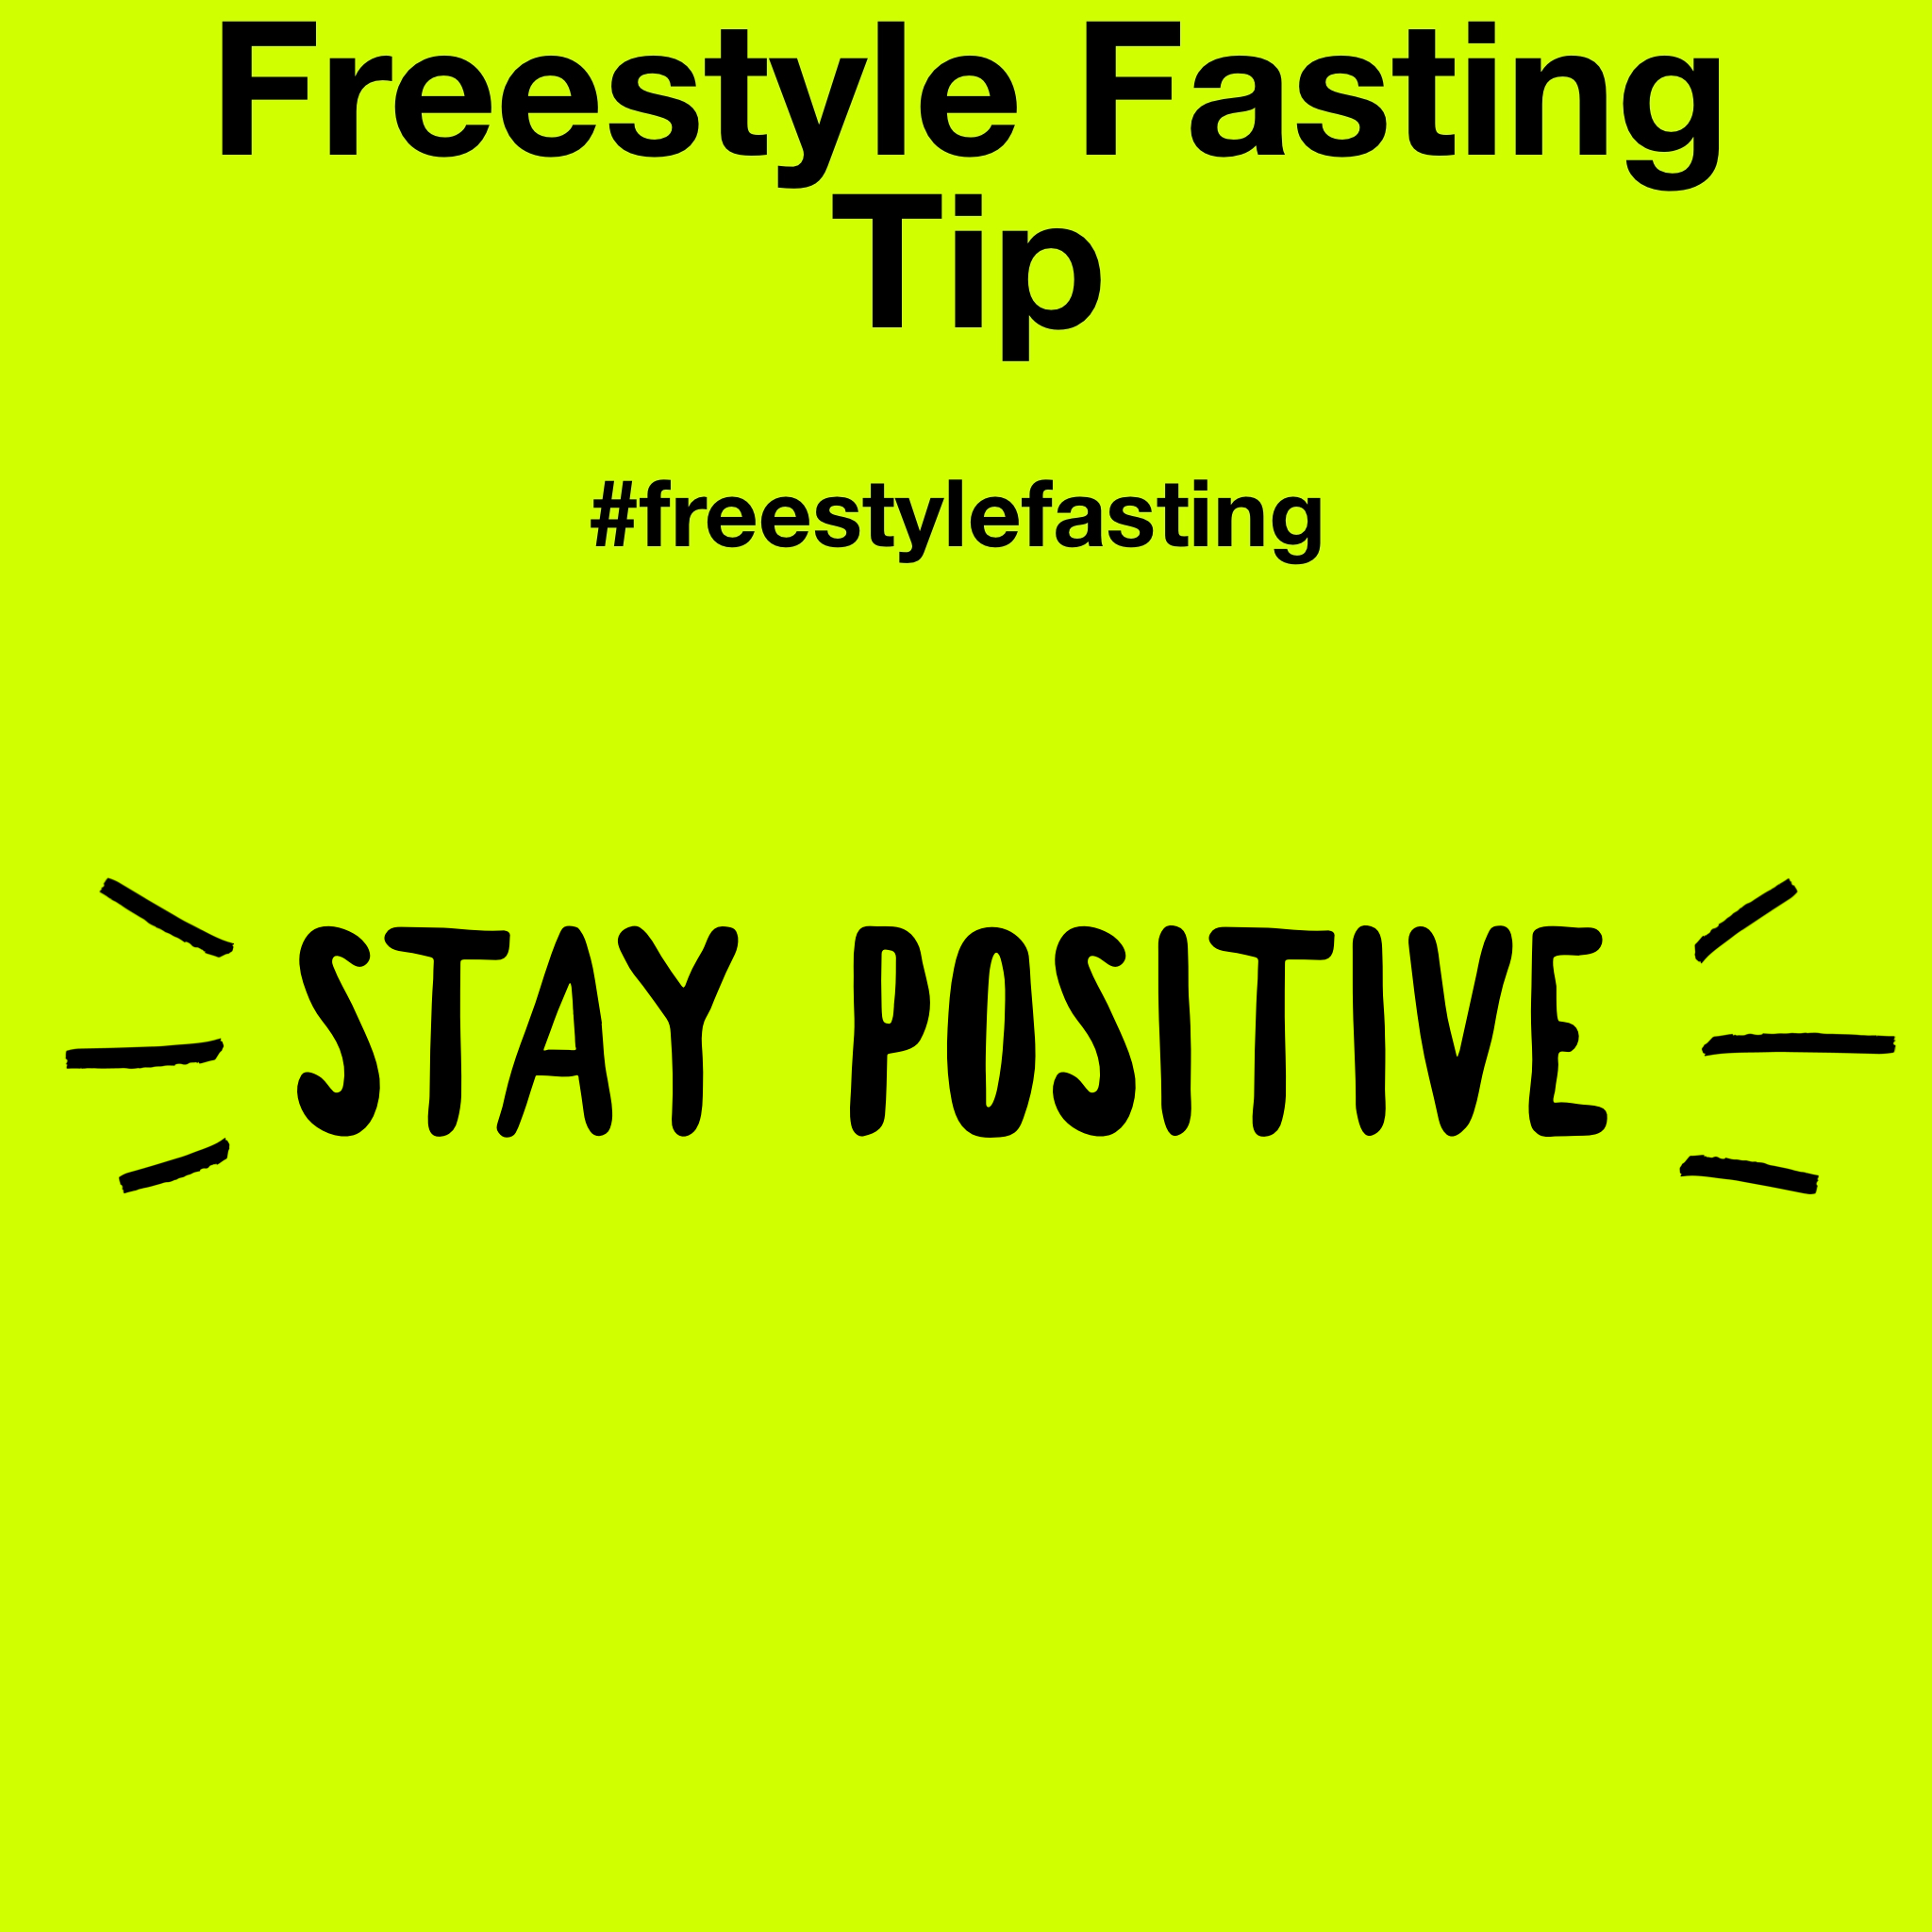 #freestylefasting Stay Positive! When You Get Off Track